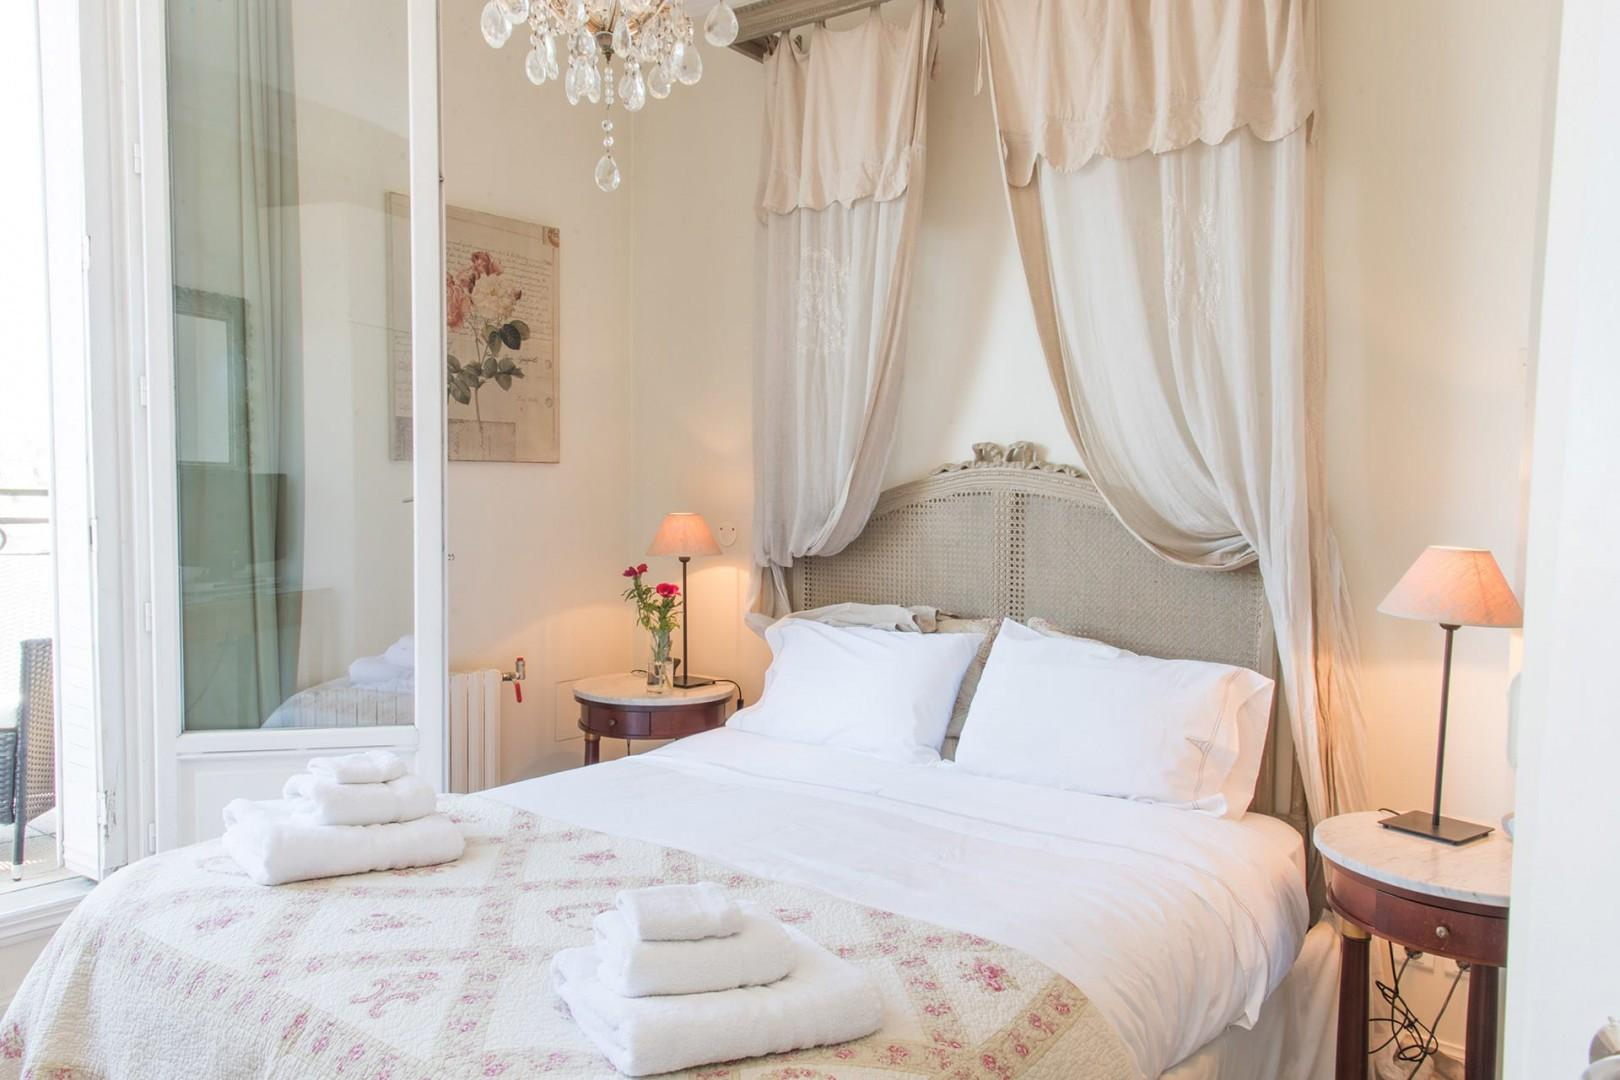 Relax in the romantic bedroom, decorated with a French flair.